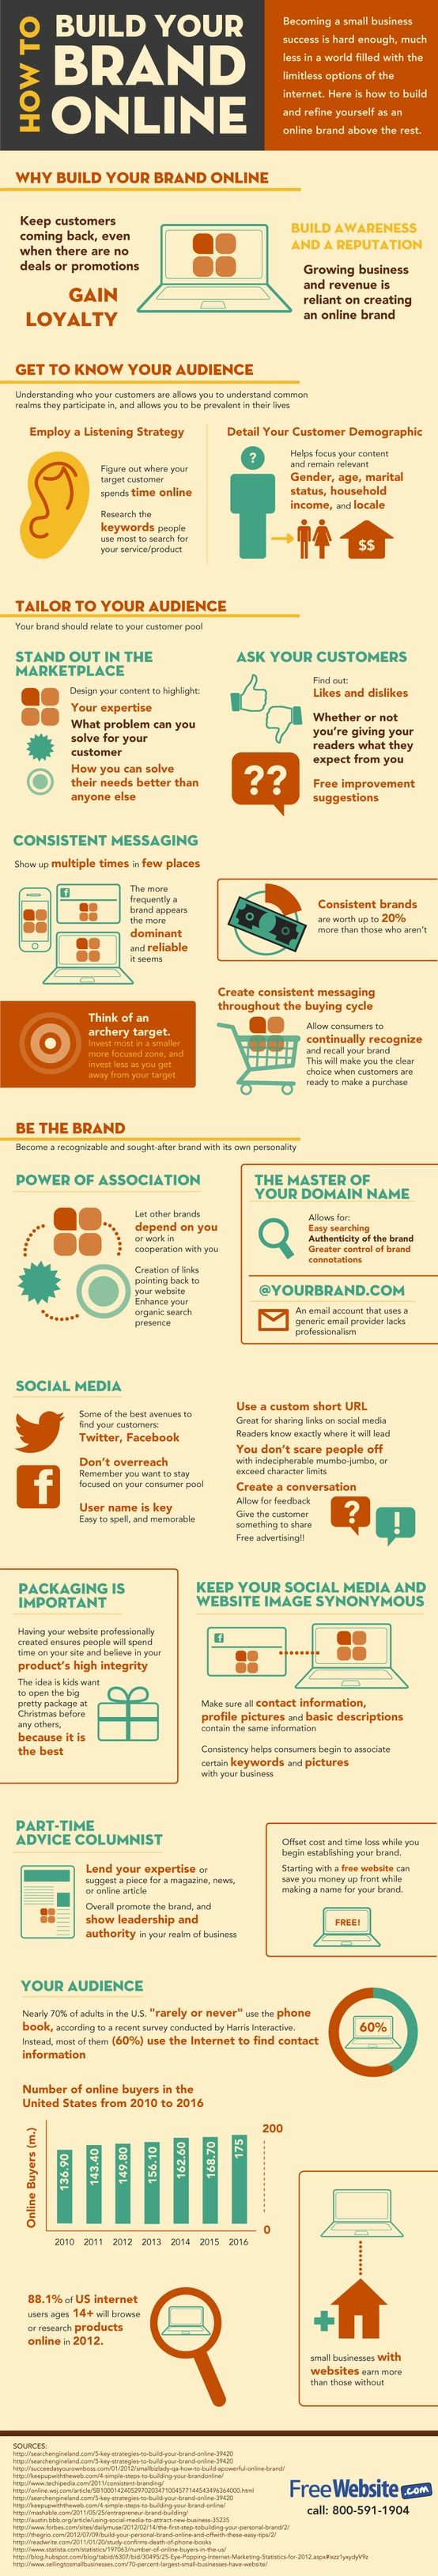 Want to Build your Brand Online?